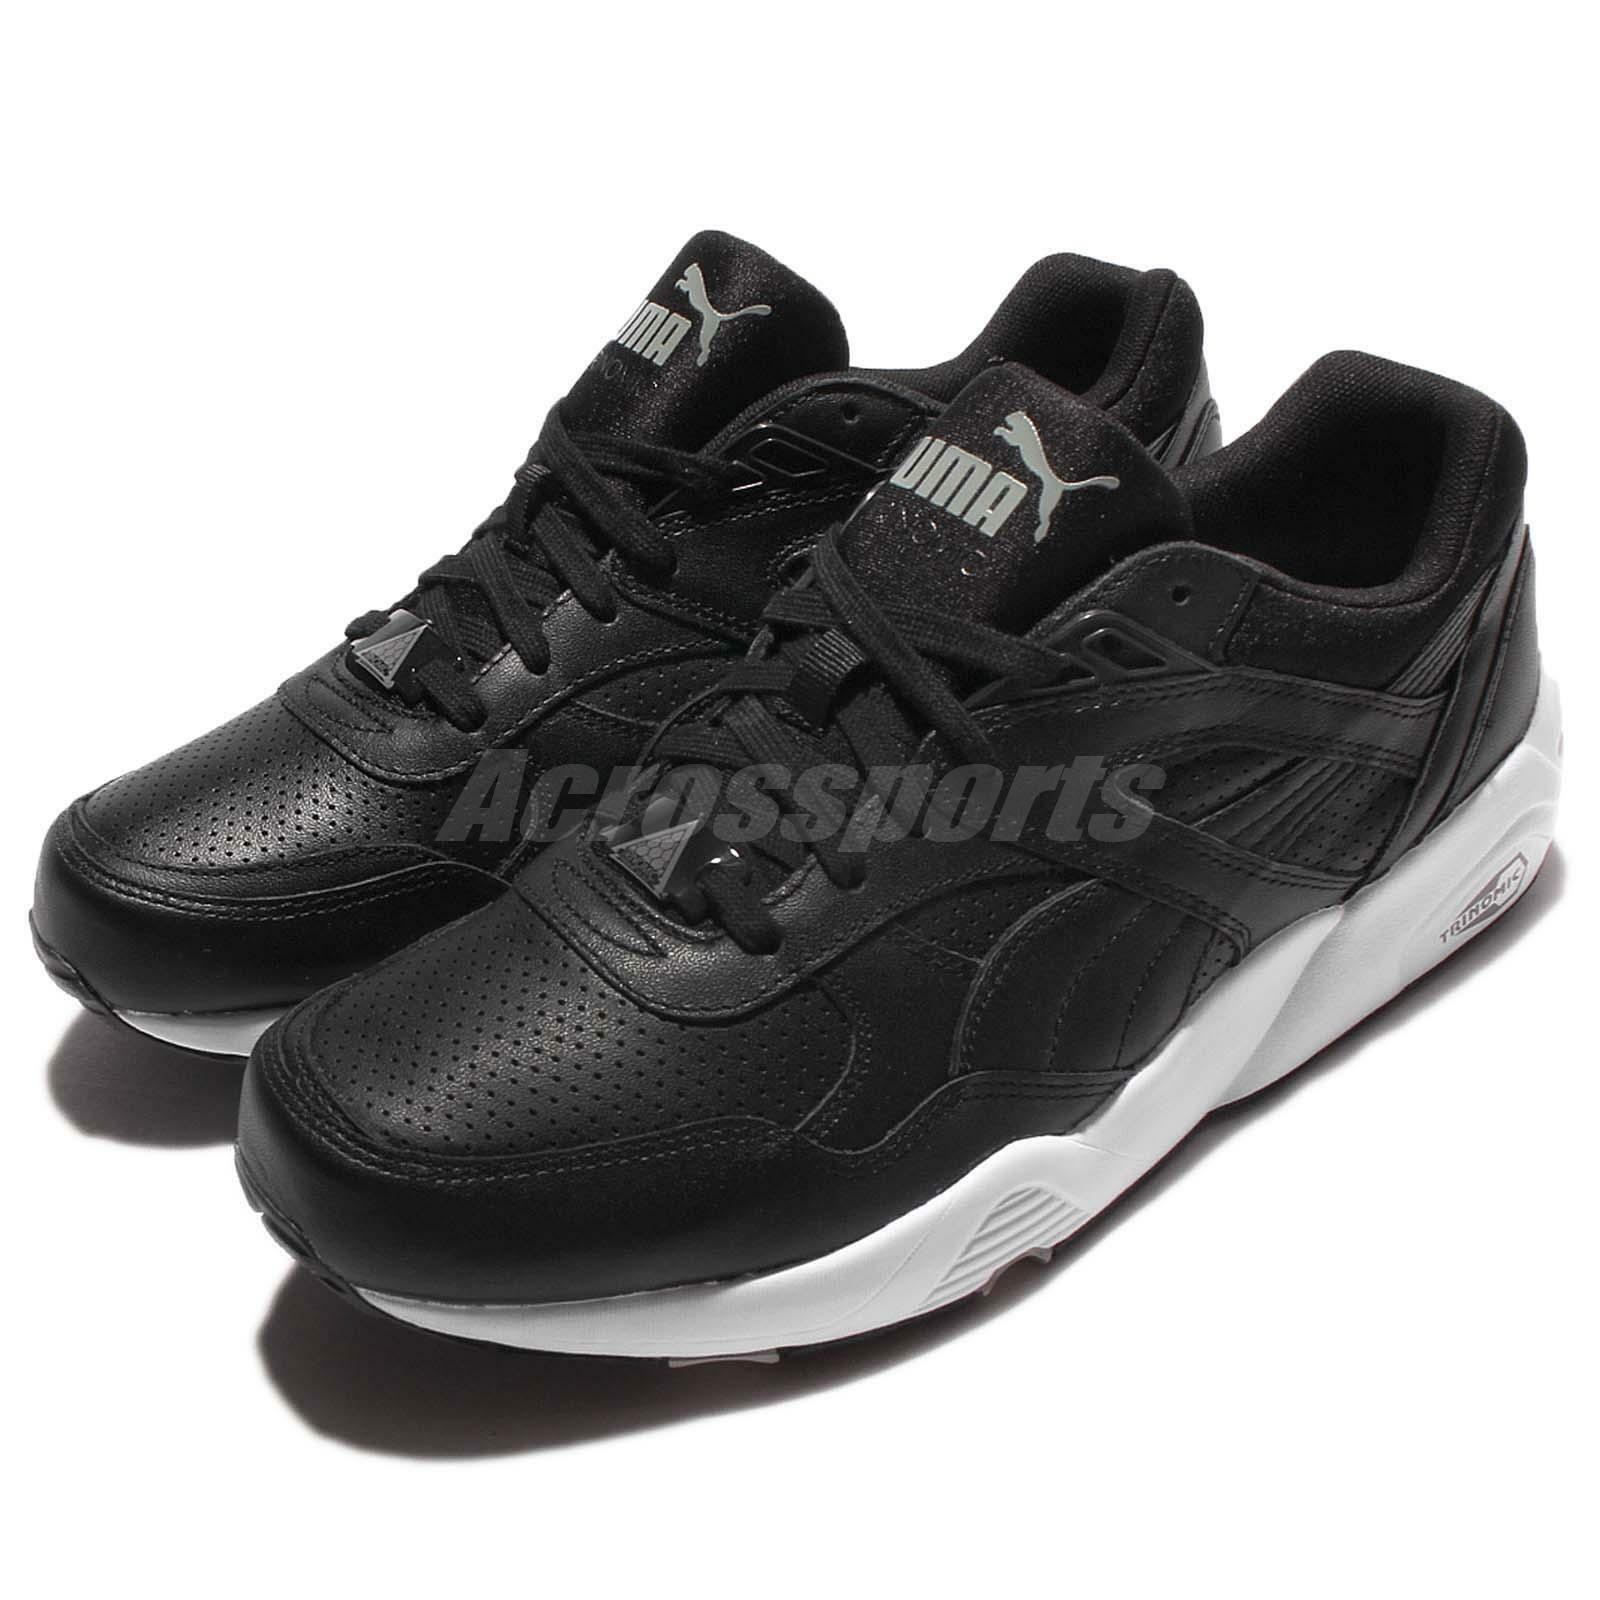 Puma R698 Core Leather Trinomic Black White Men Running Shoes Sneakers 360601-02